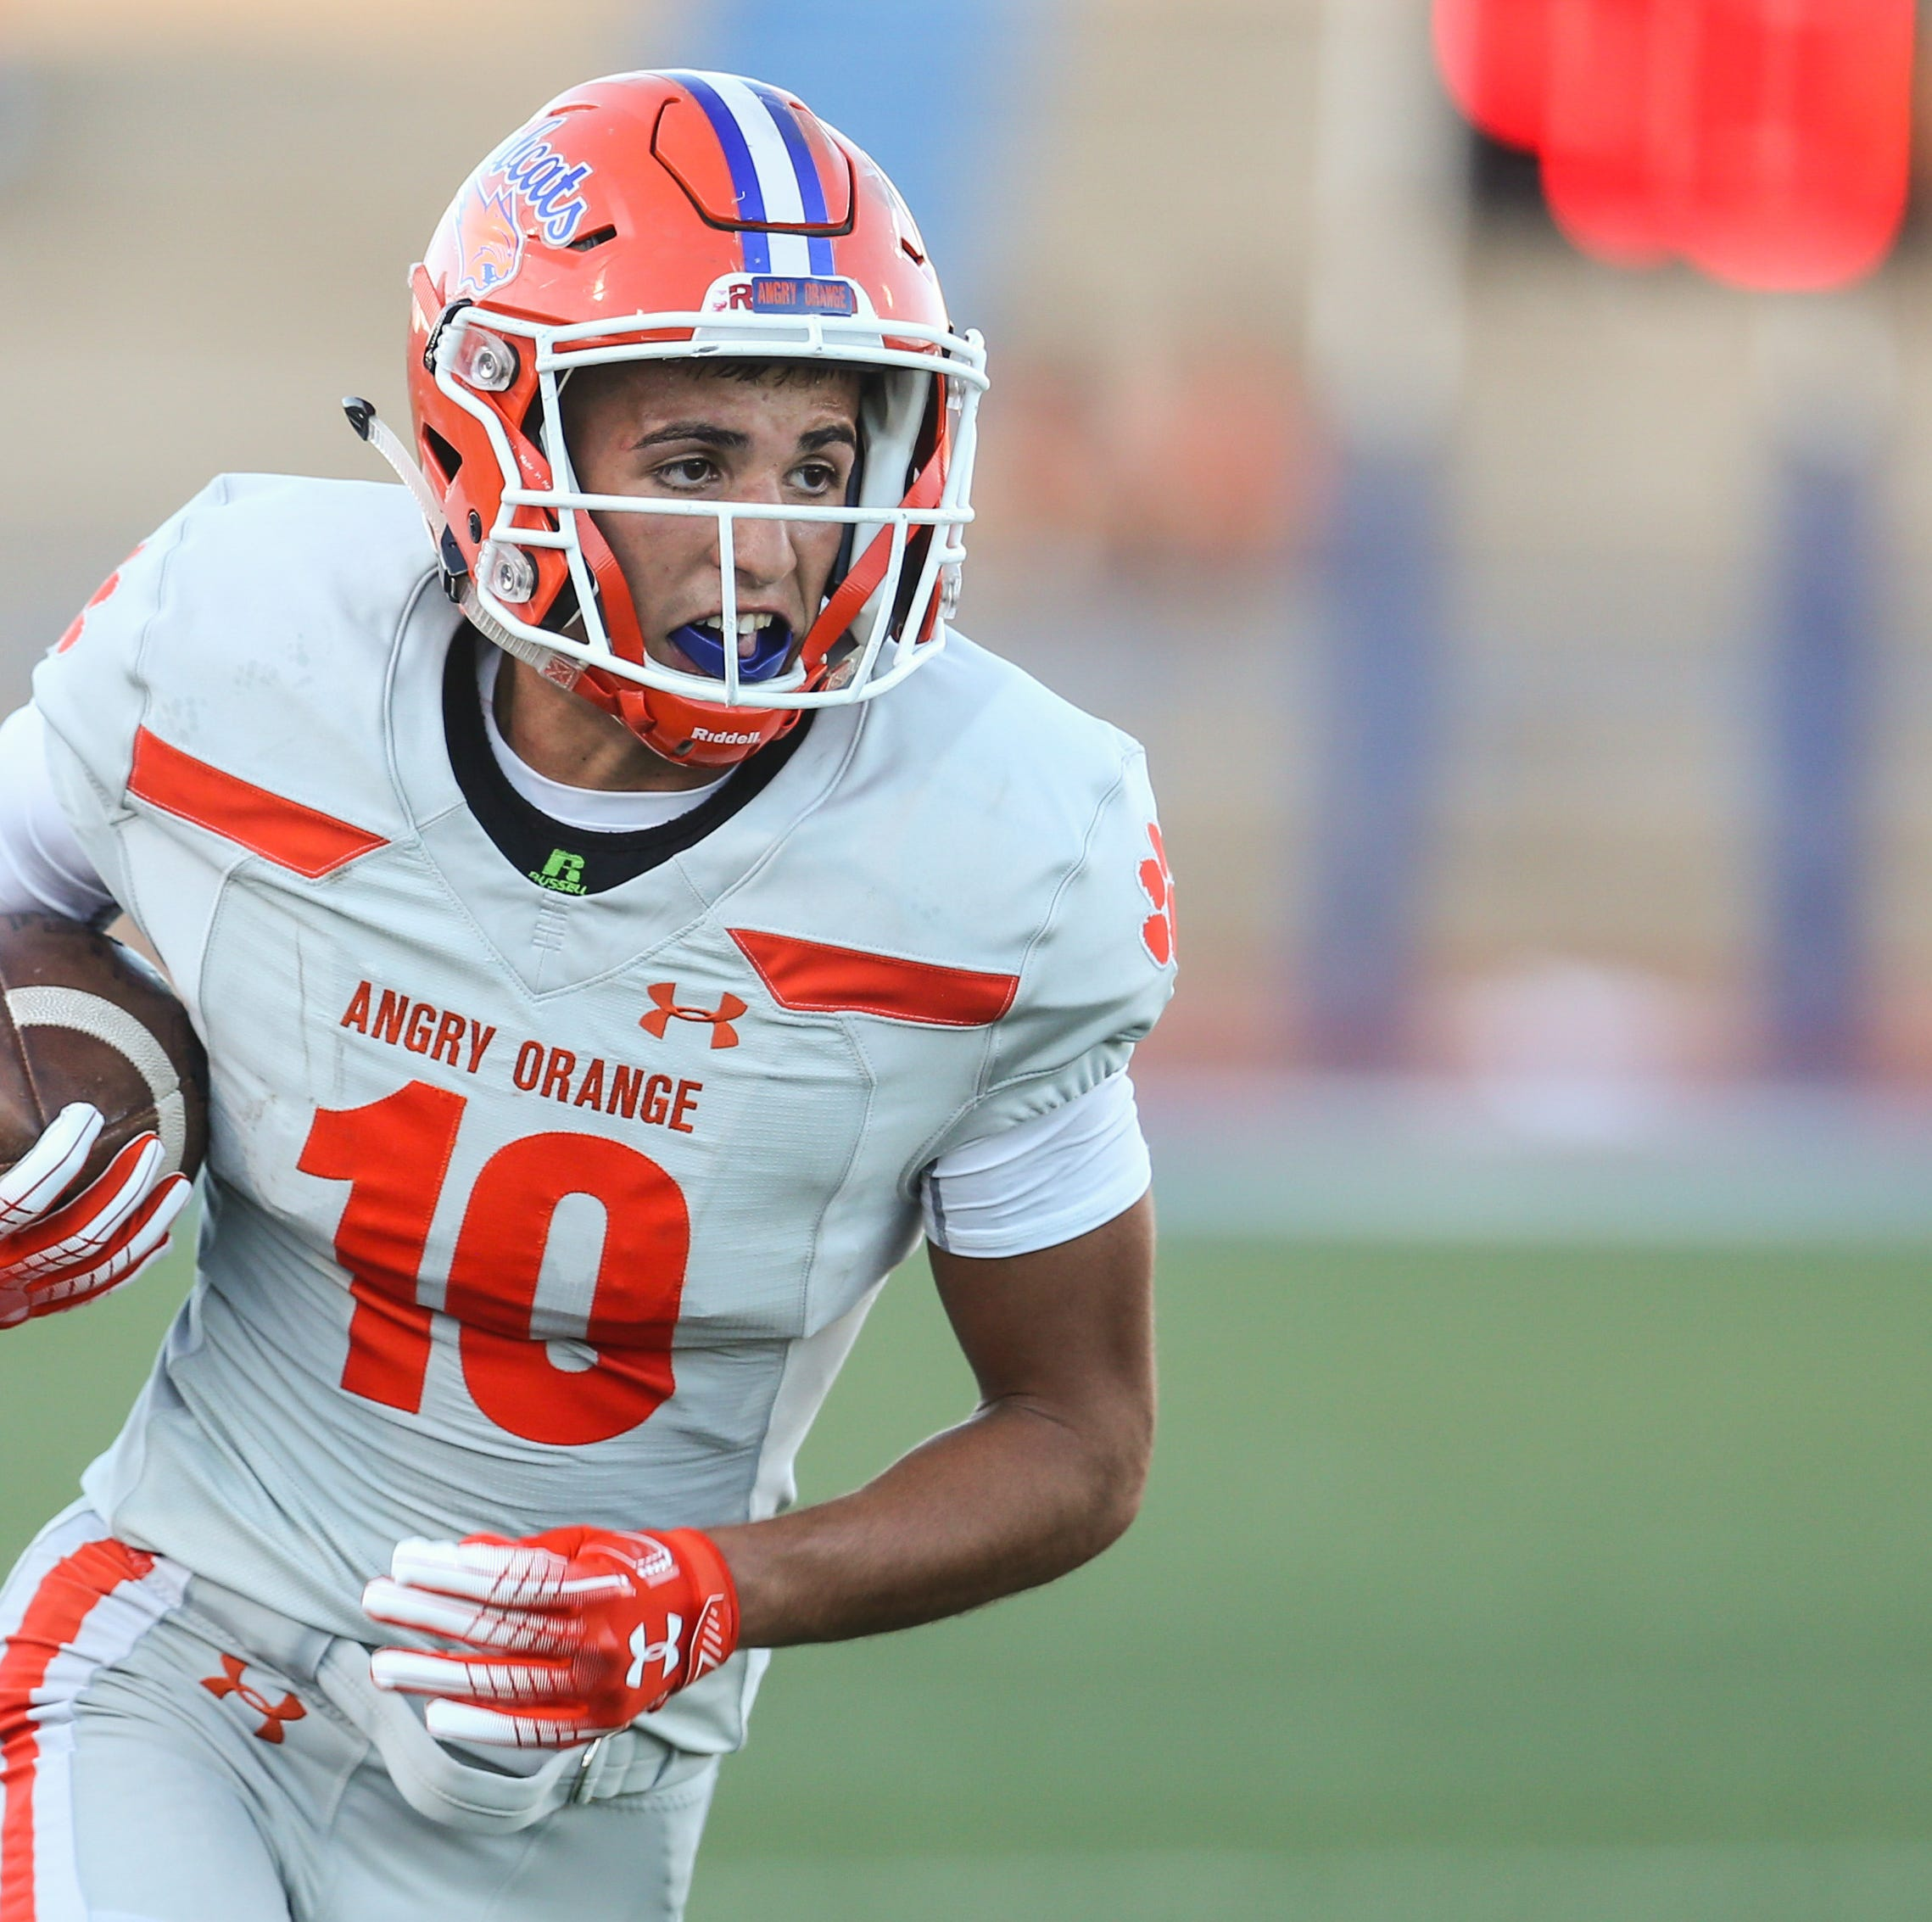 San Angelo Central's second-half comeback falls short in Cedar Park